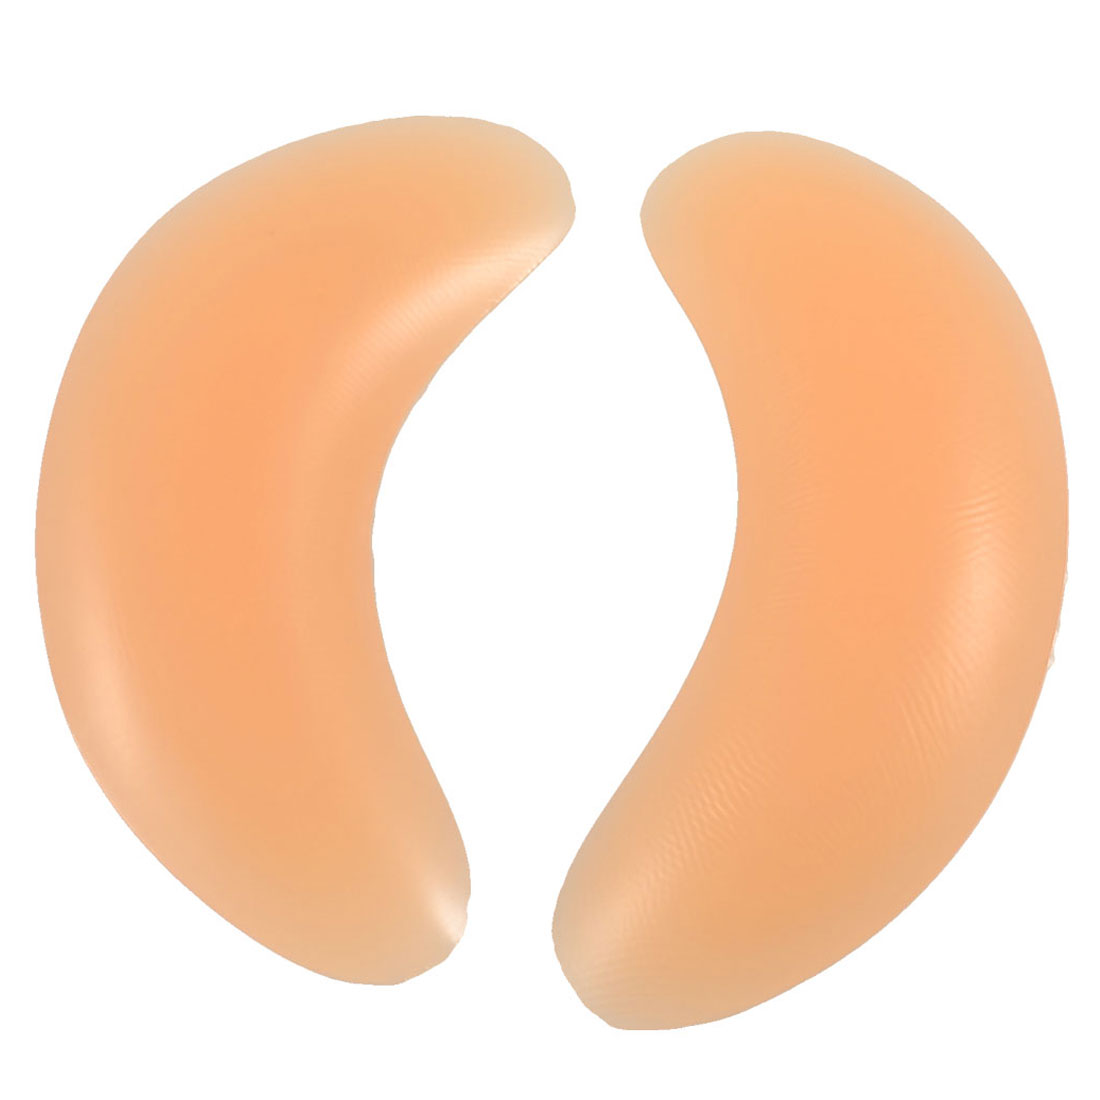 Ladies Pair Moon Shape Silicone Breast Enhancer Insert Light Orange